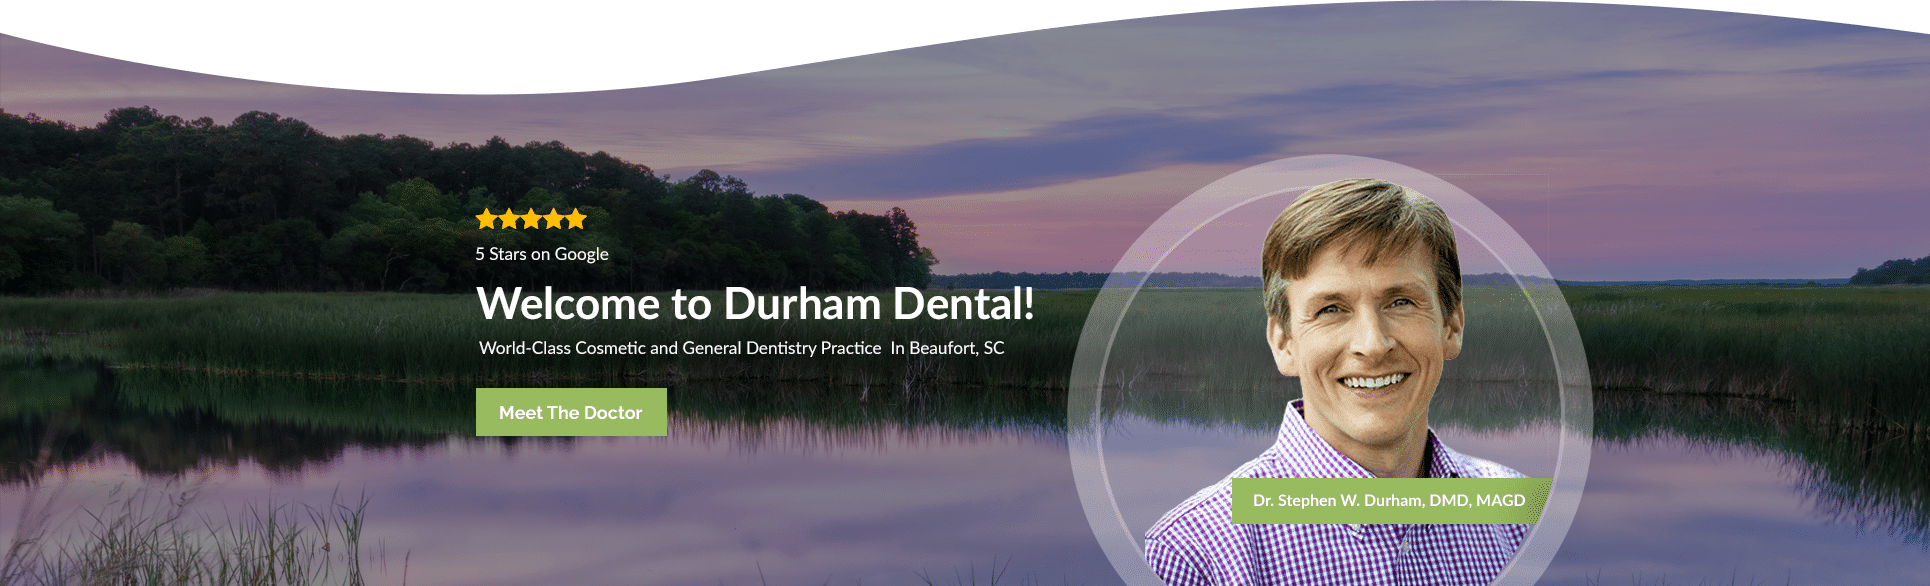 Welcome to Durham Dental world class cosmetic and general dentistry practice